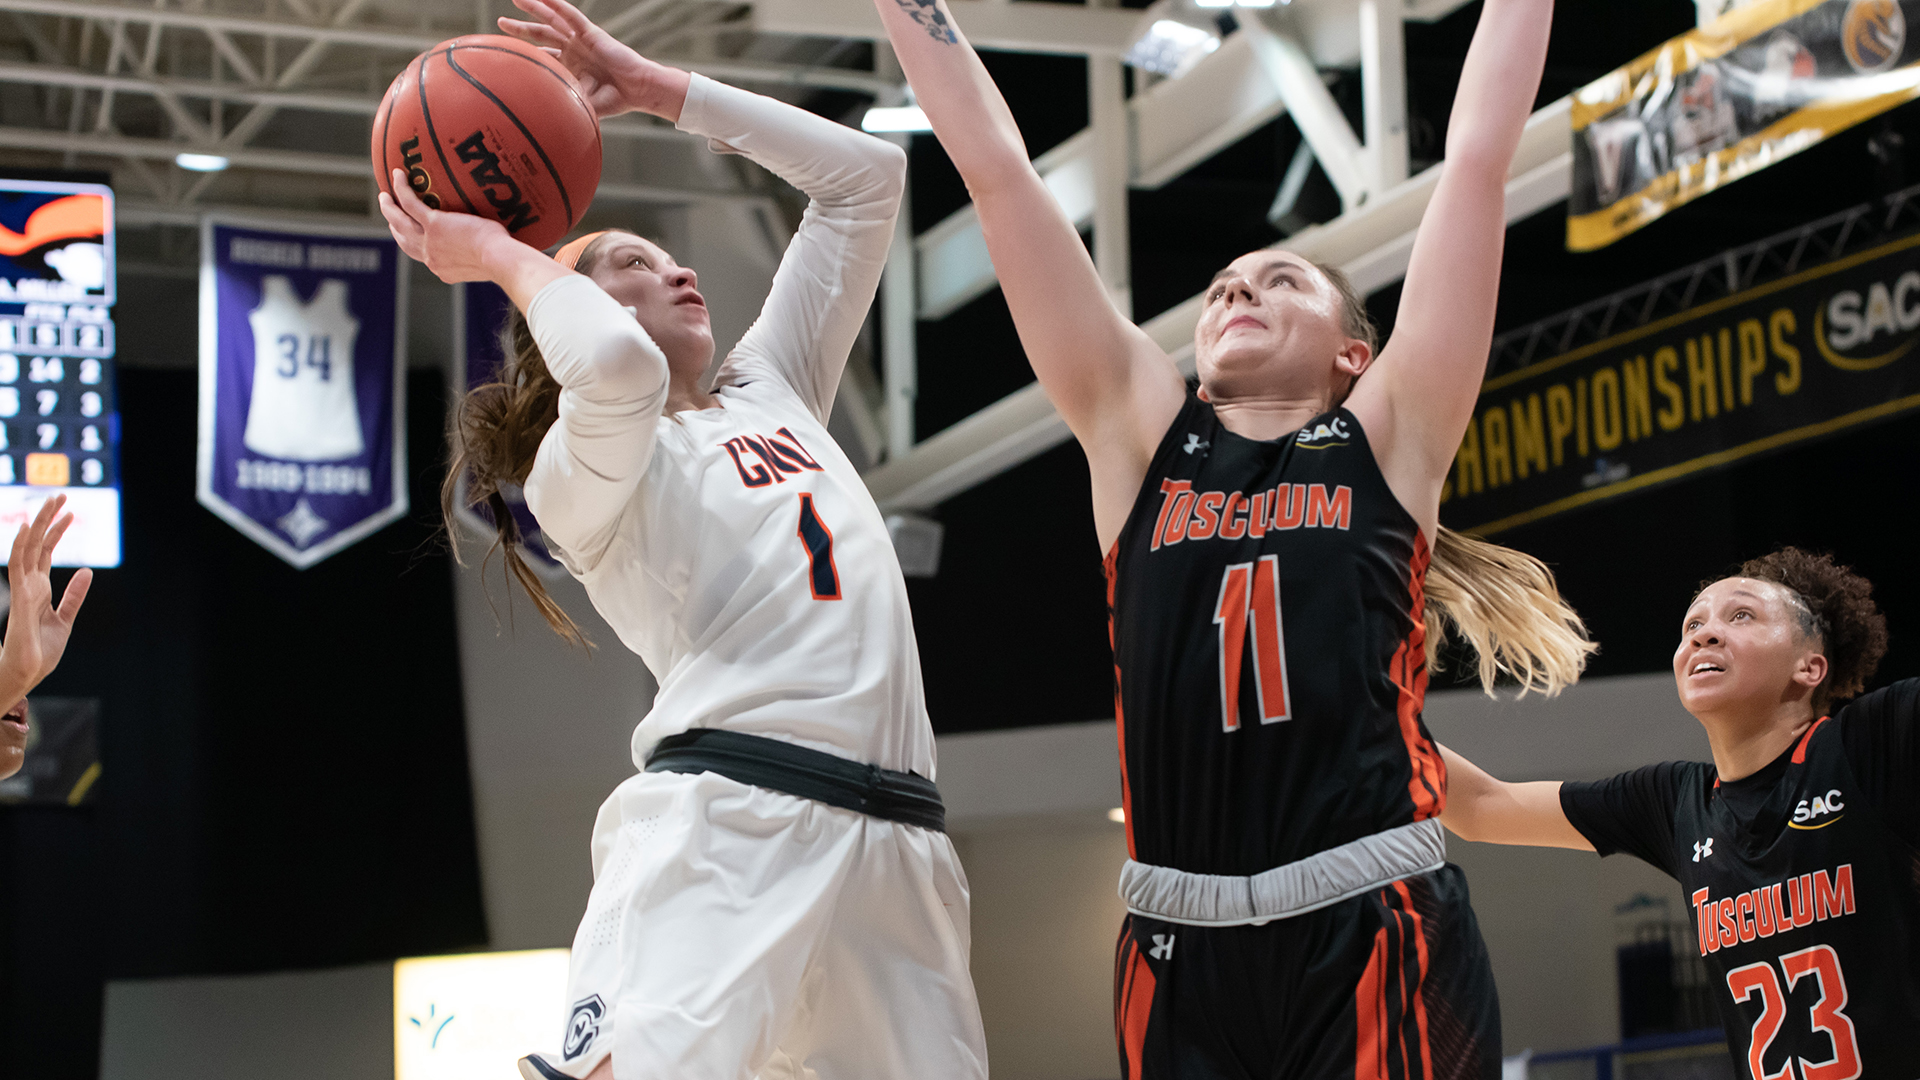 Kasey Johnson defends Kayla Marosites in Saturday's SAC Championship semifinal (photo by Stacey Wylie)